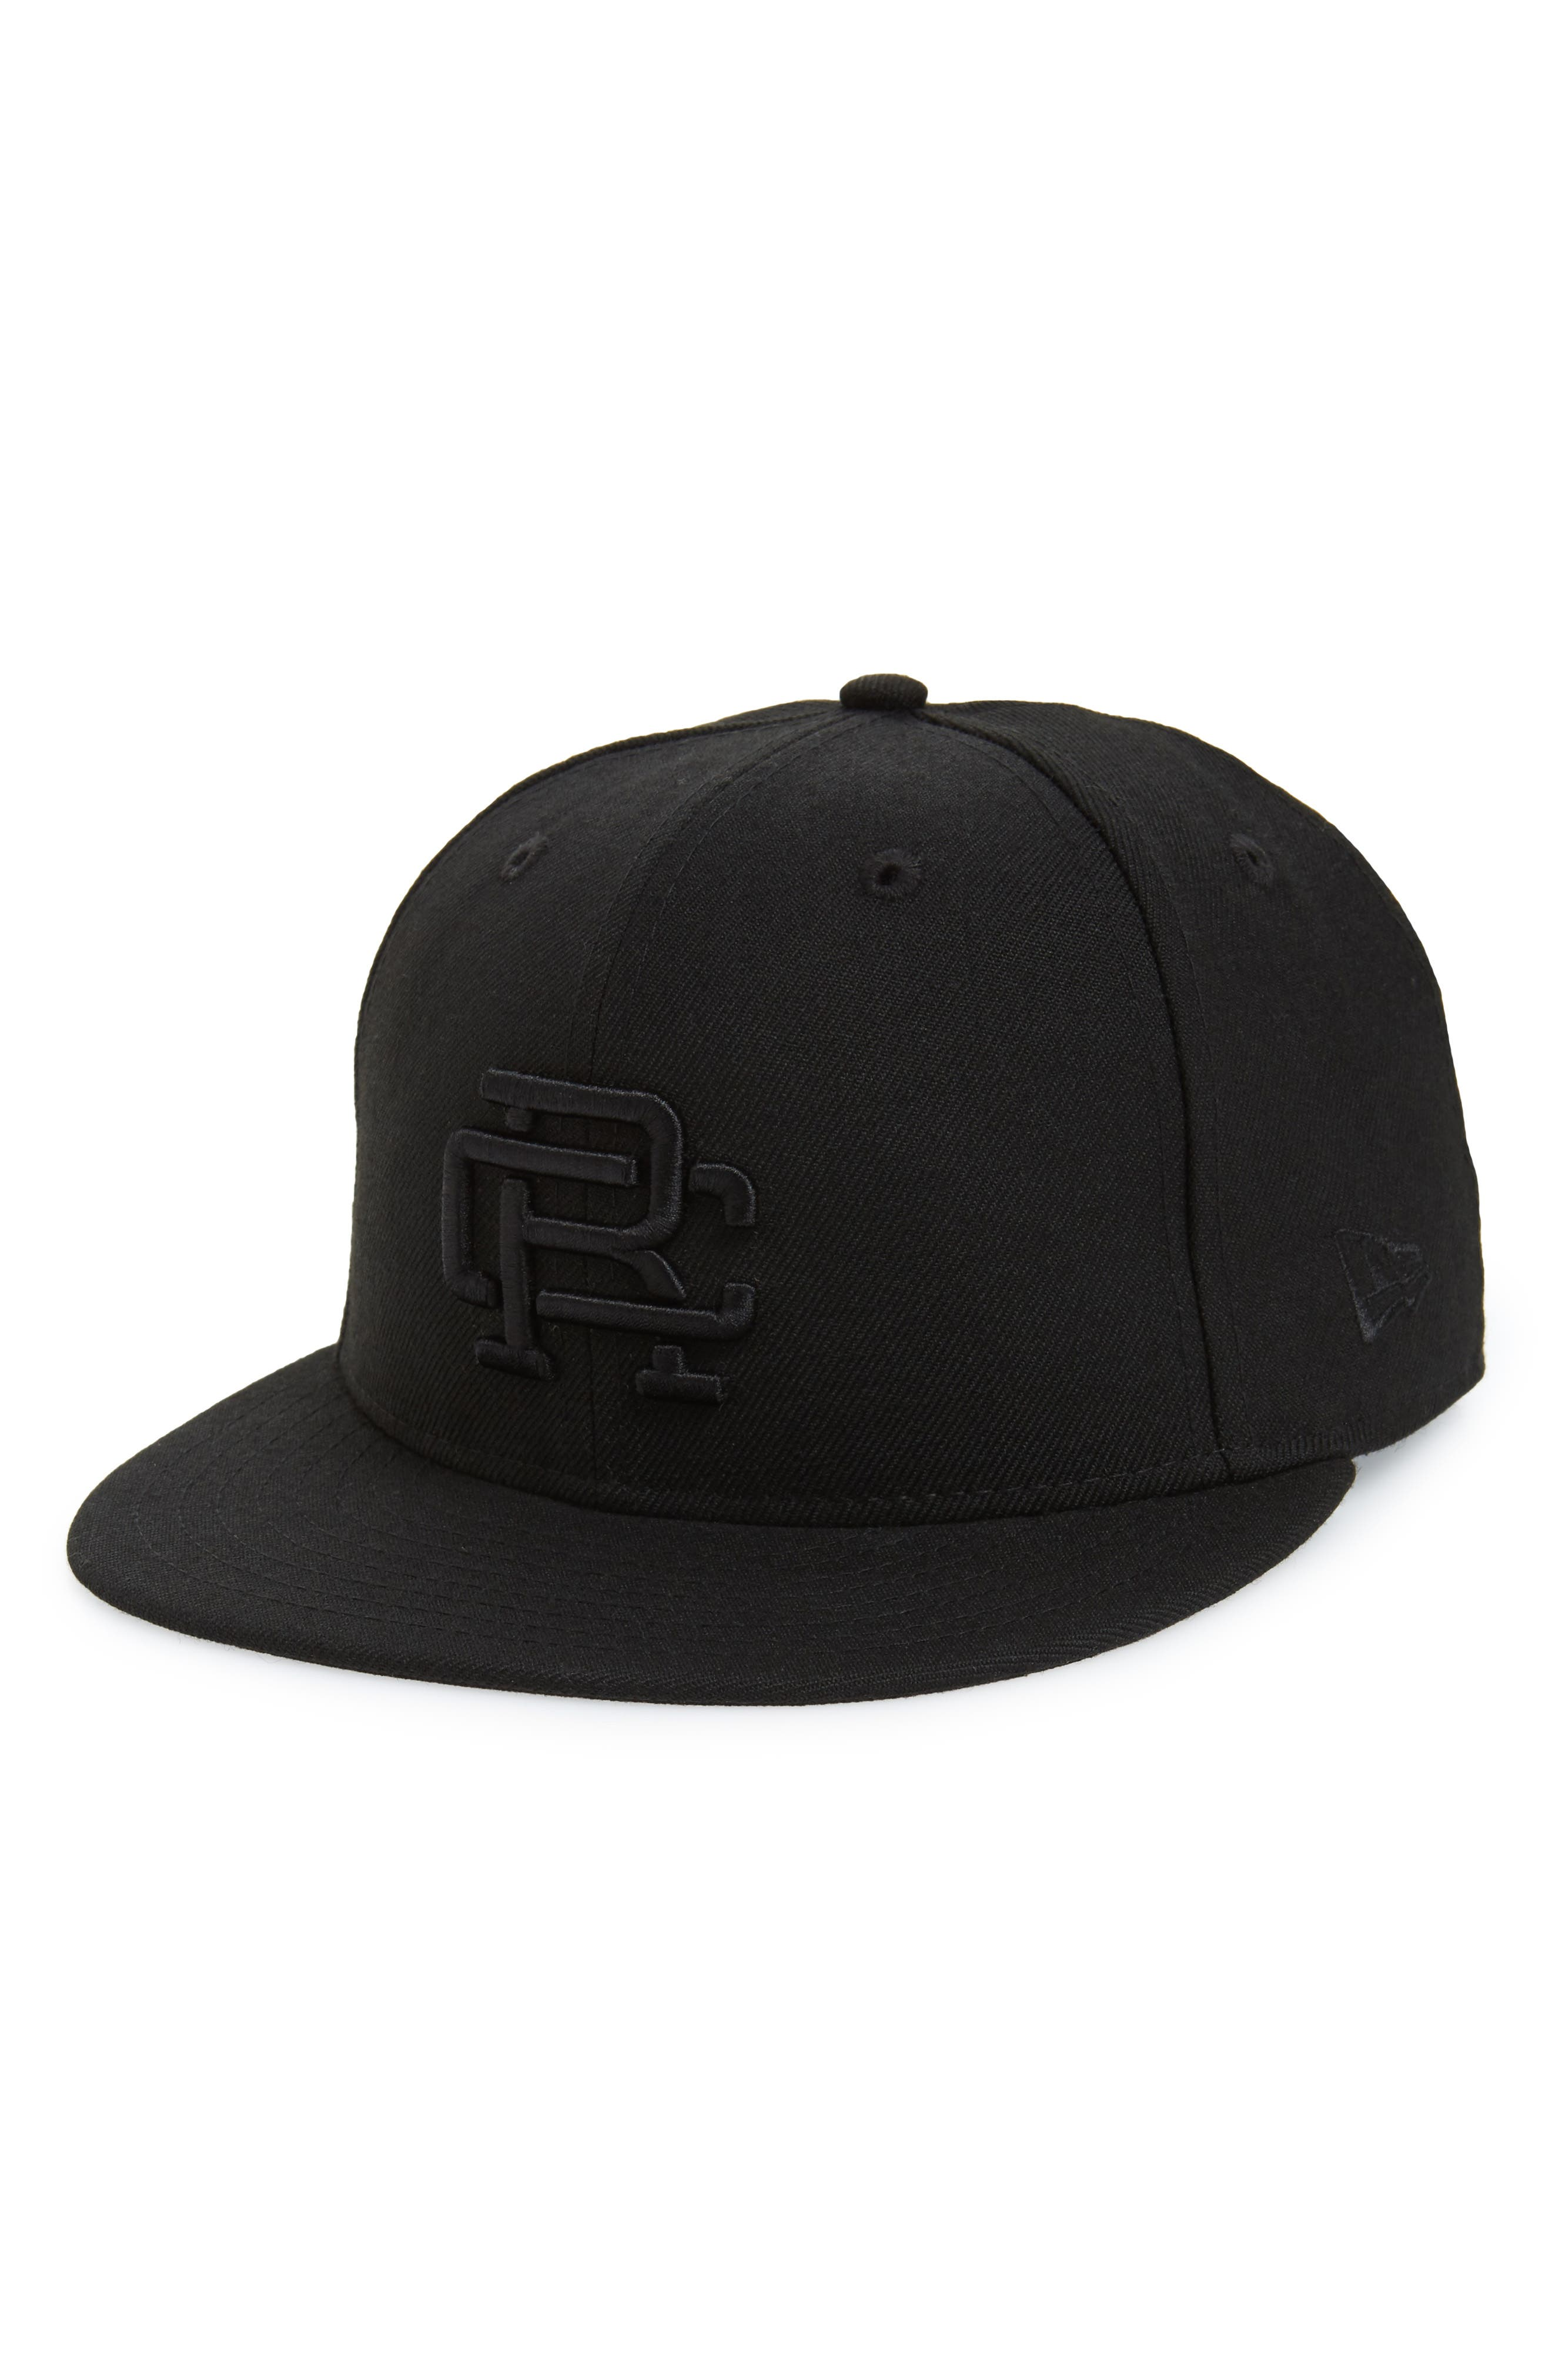 REIGNING CHAMP, New Era Fitted Baseball Cap, Main thumbnail 1, color, BLACK / BLACK